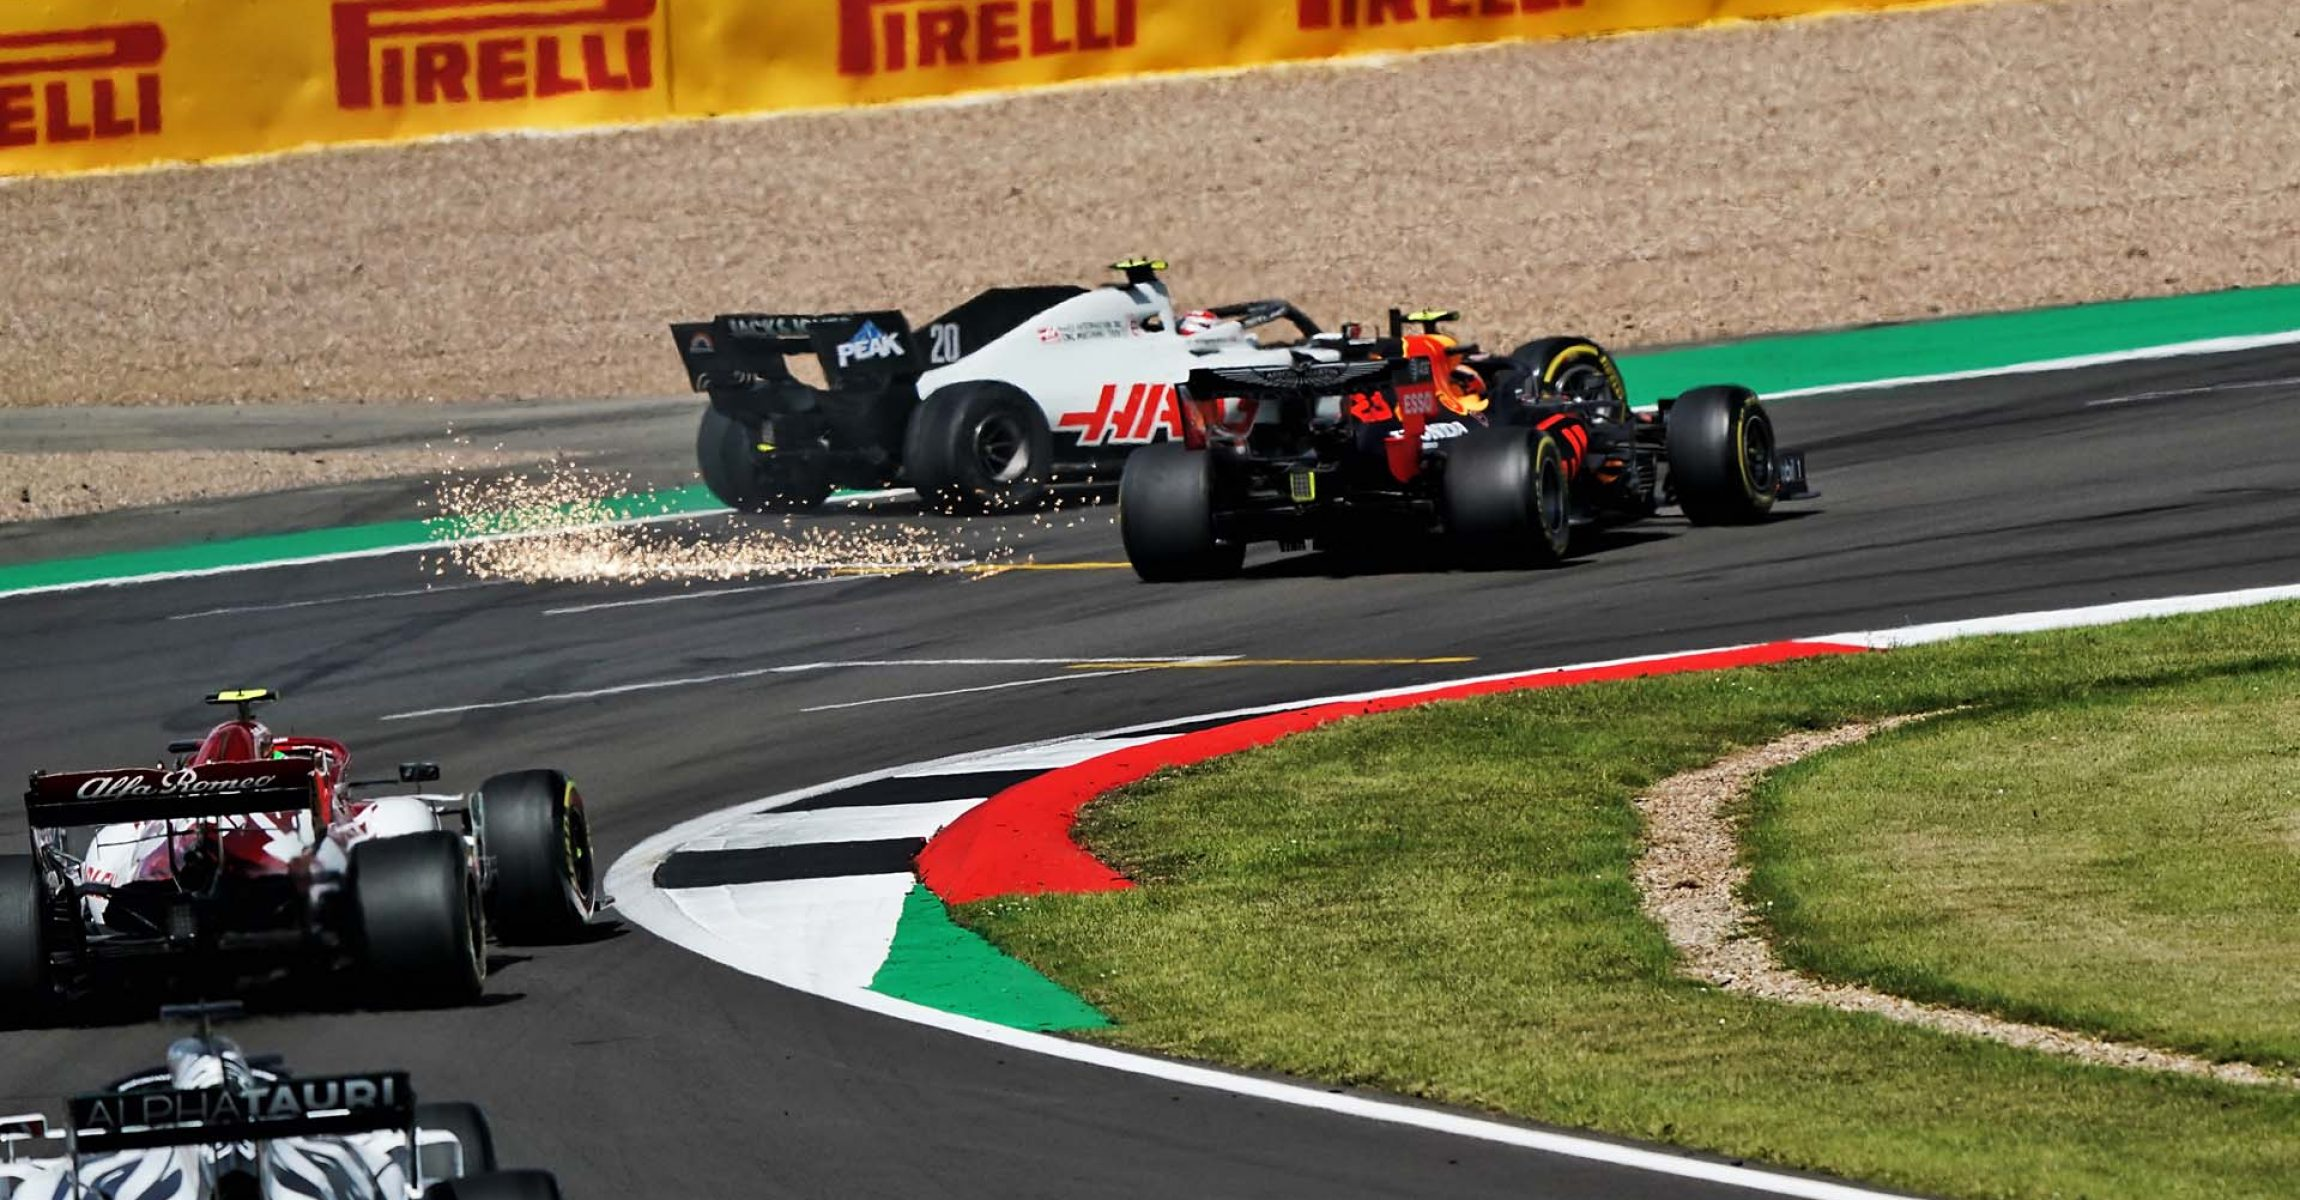 Kevin Magnussen (DEN) Haas VF-20 and Alexander Albon (THA) Red Bull Racing RB16 collide.                                02.08.2020. Formula 1 World Championship, Rd 4, British Grand Prix, Silverstone, England, Race Day. - www.xpbimages.com, EMail: requests@xpbimages.com © Copyright: FIA Pool For Editorial Use Only